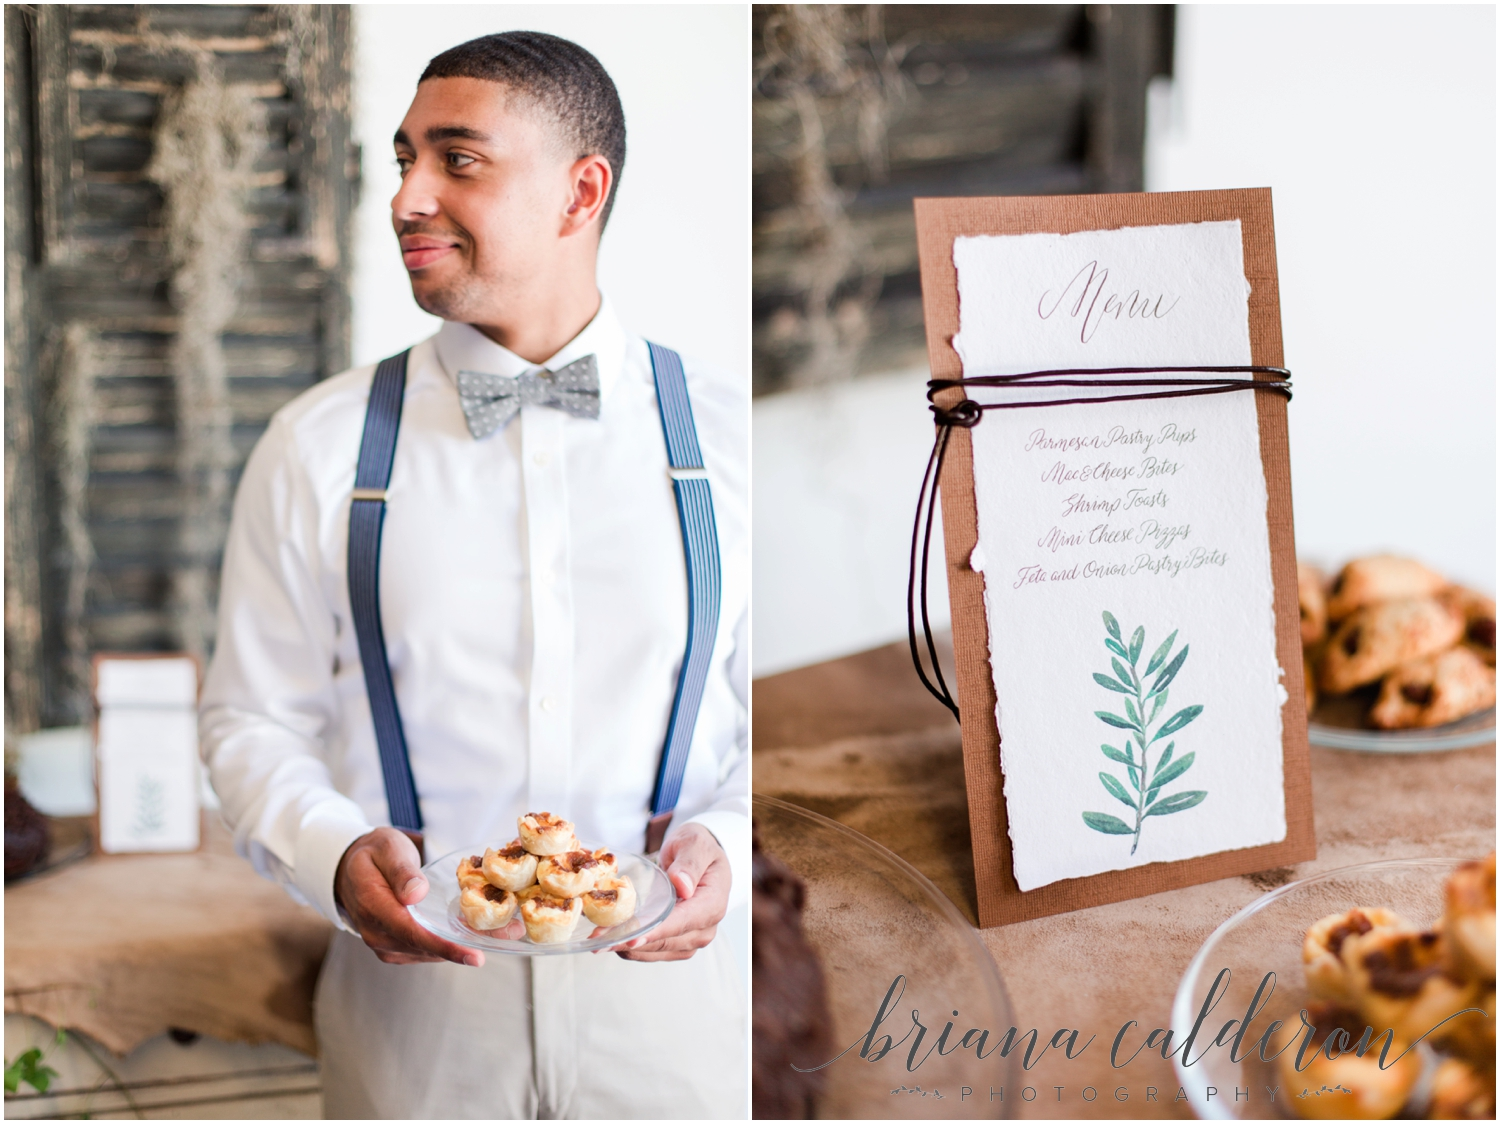 Seventh Heaven Vintage Rental styled shoot. Photos by Briana Calderon Photography_0740.jpg